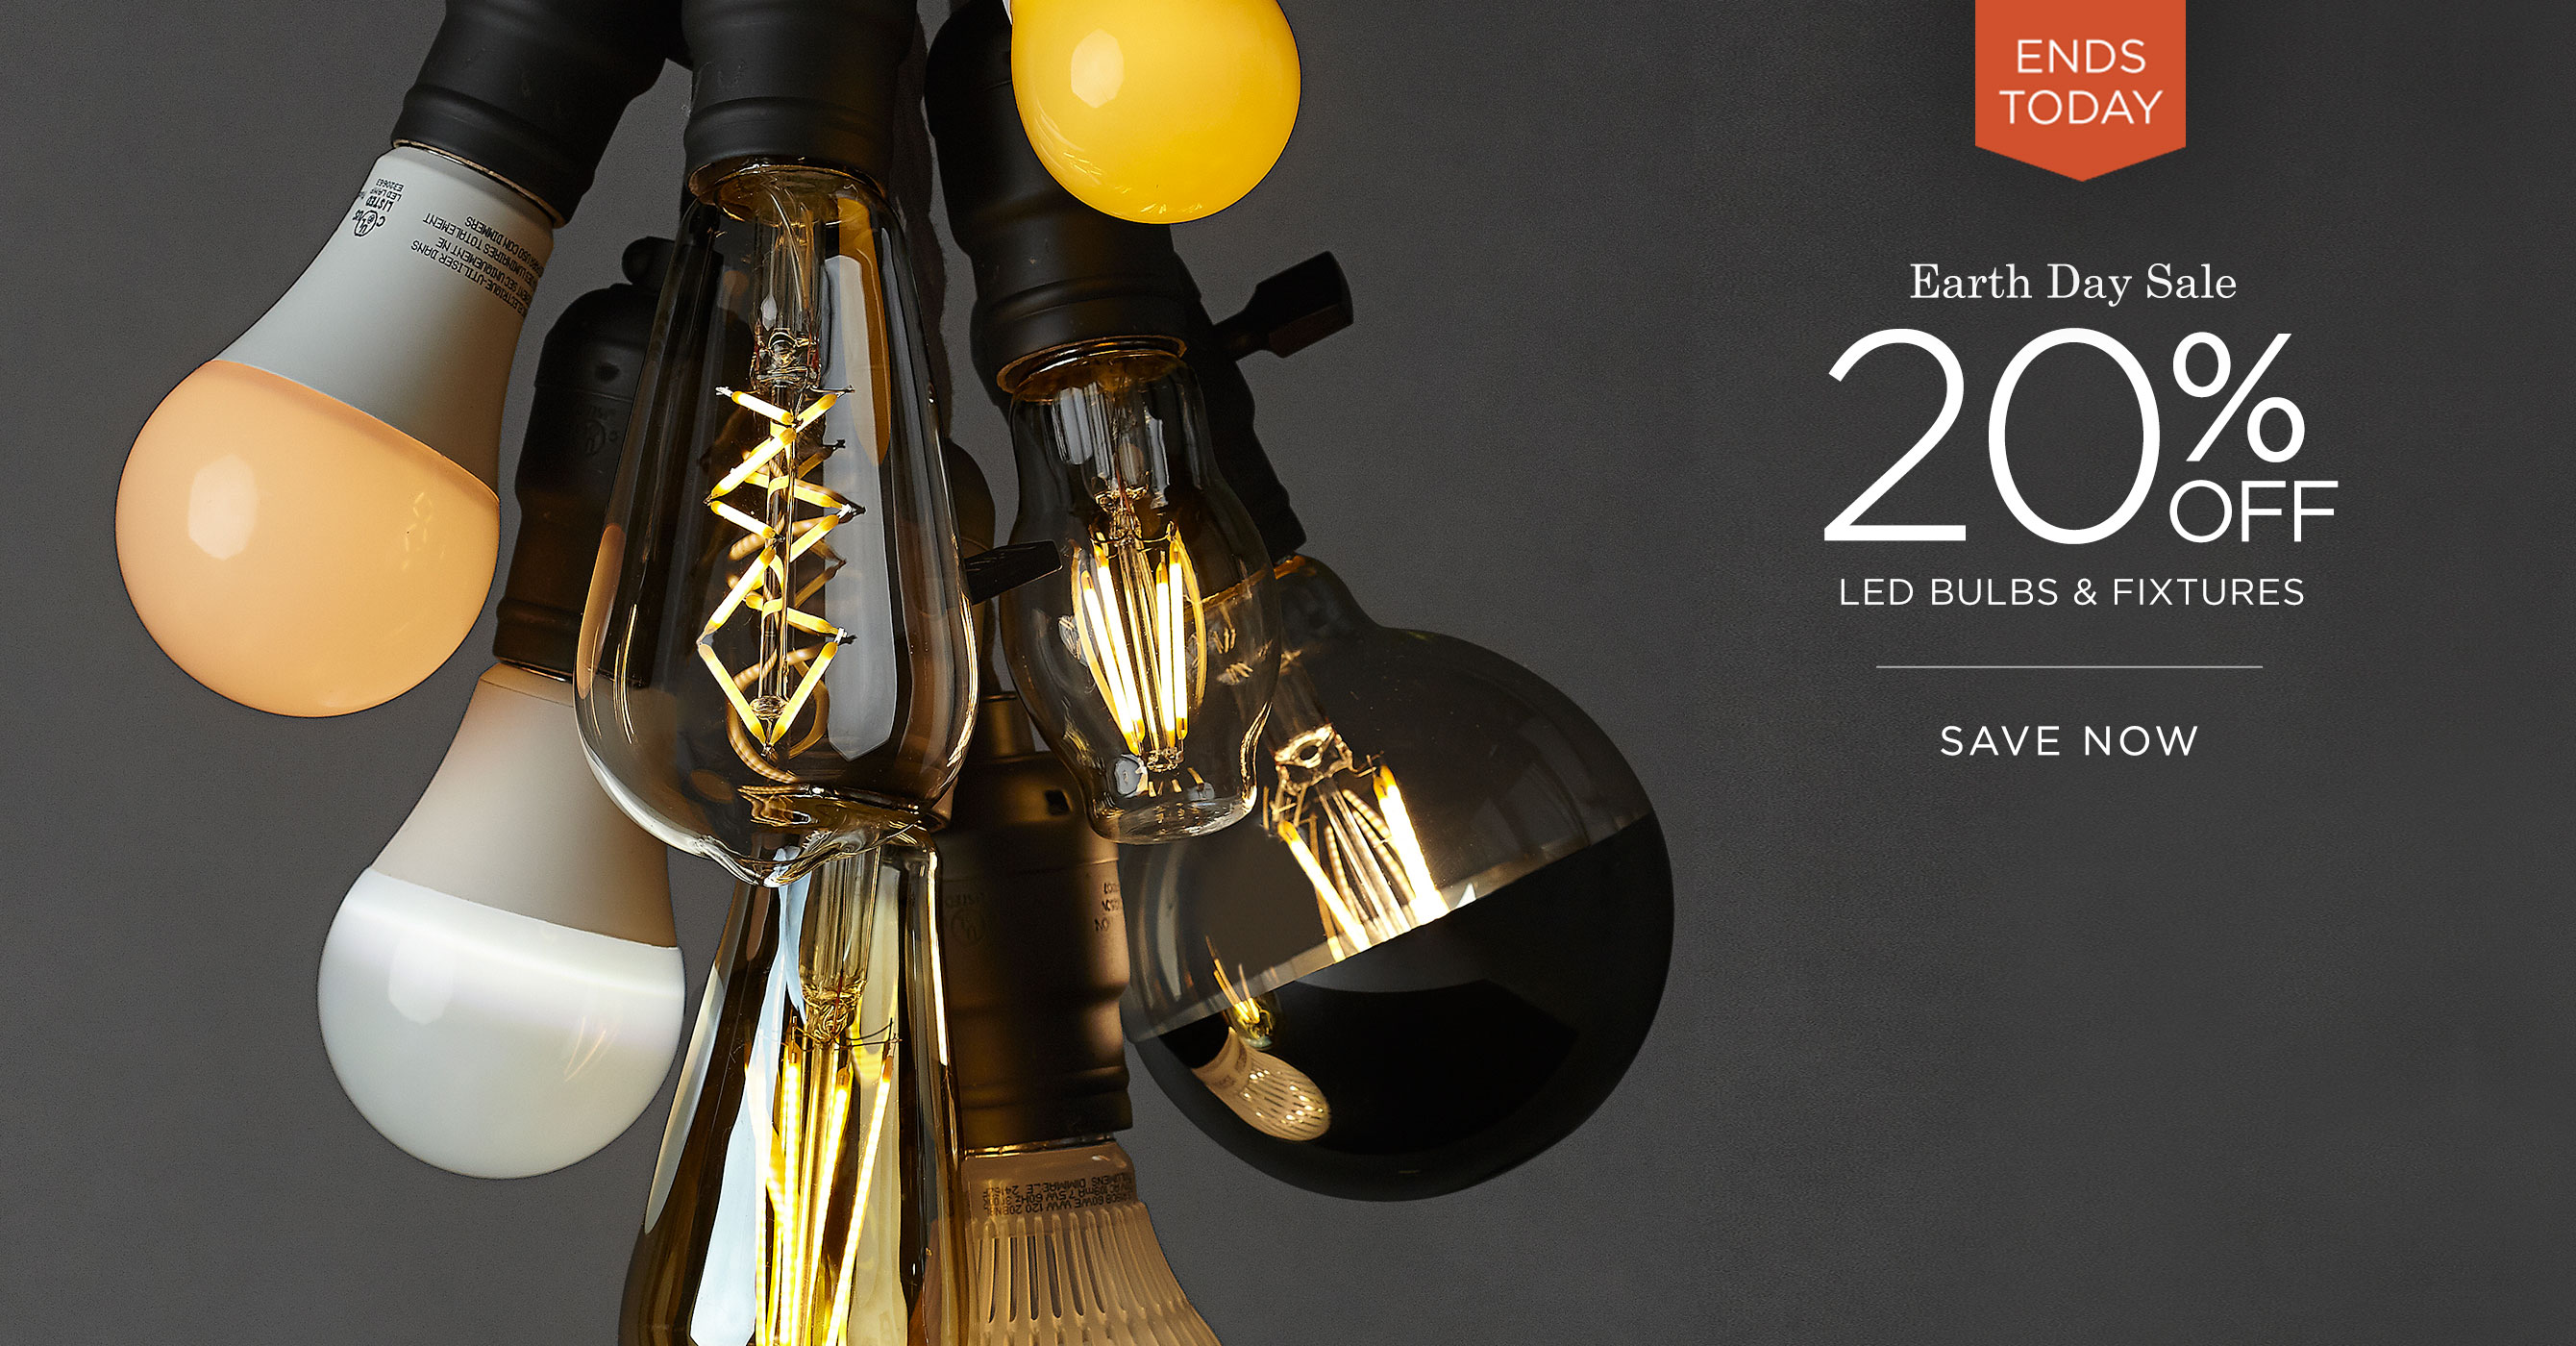 Earth Day Sale: Save 20% off LED Light Bulbs & Fixtures